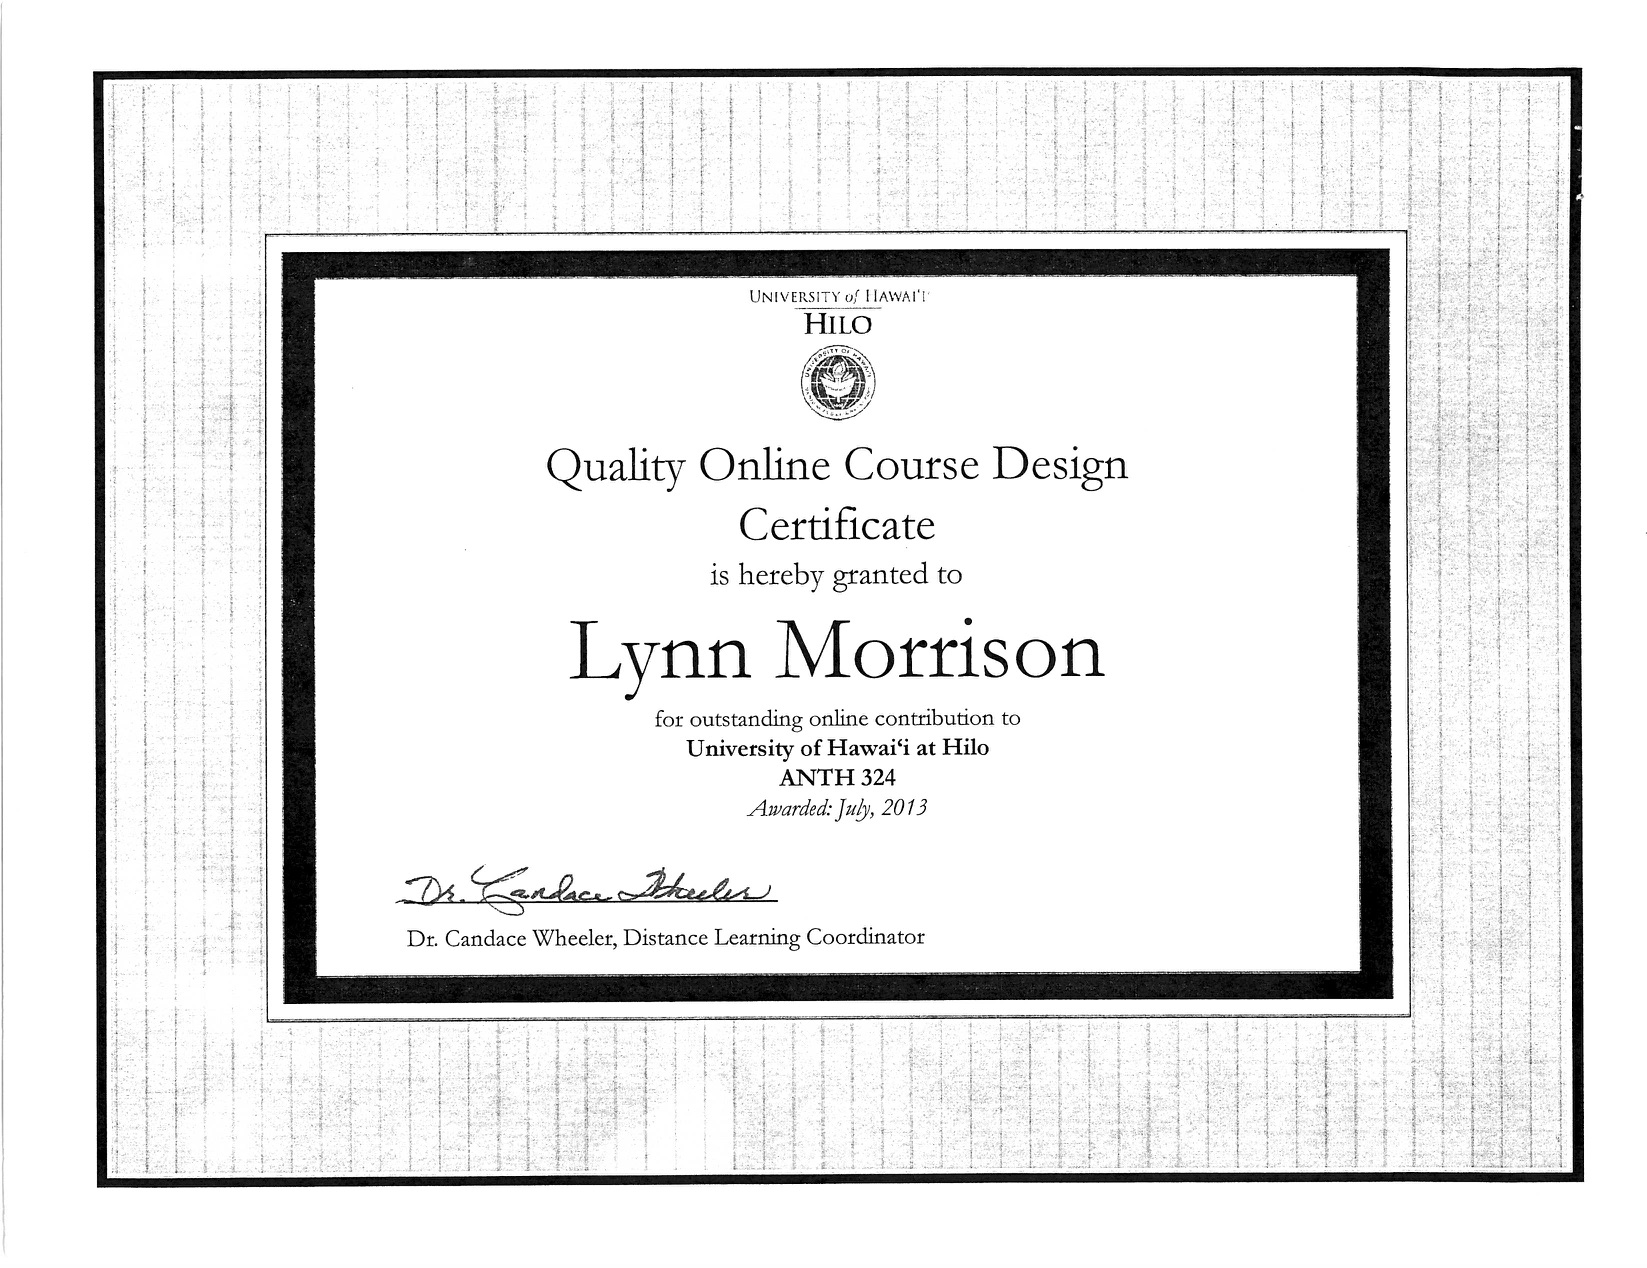 Quality Online Course Design Certificate, awarded to Lynn Morrison